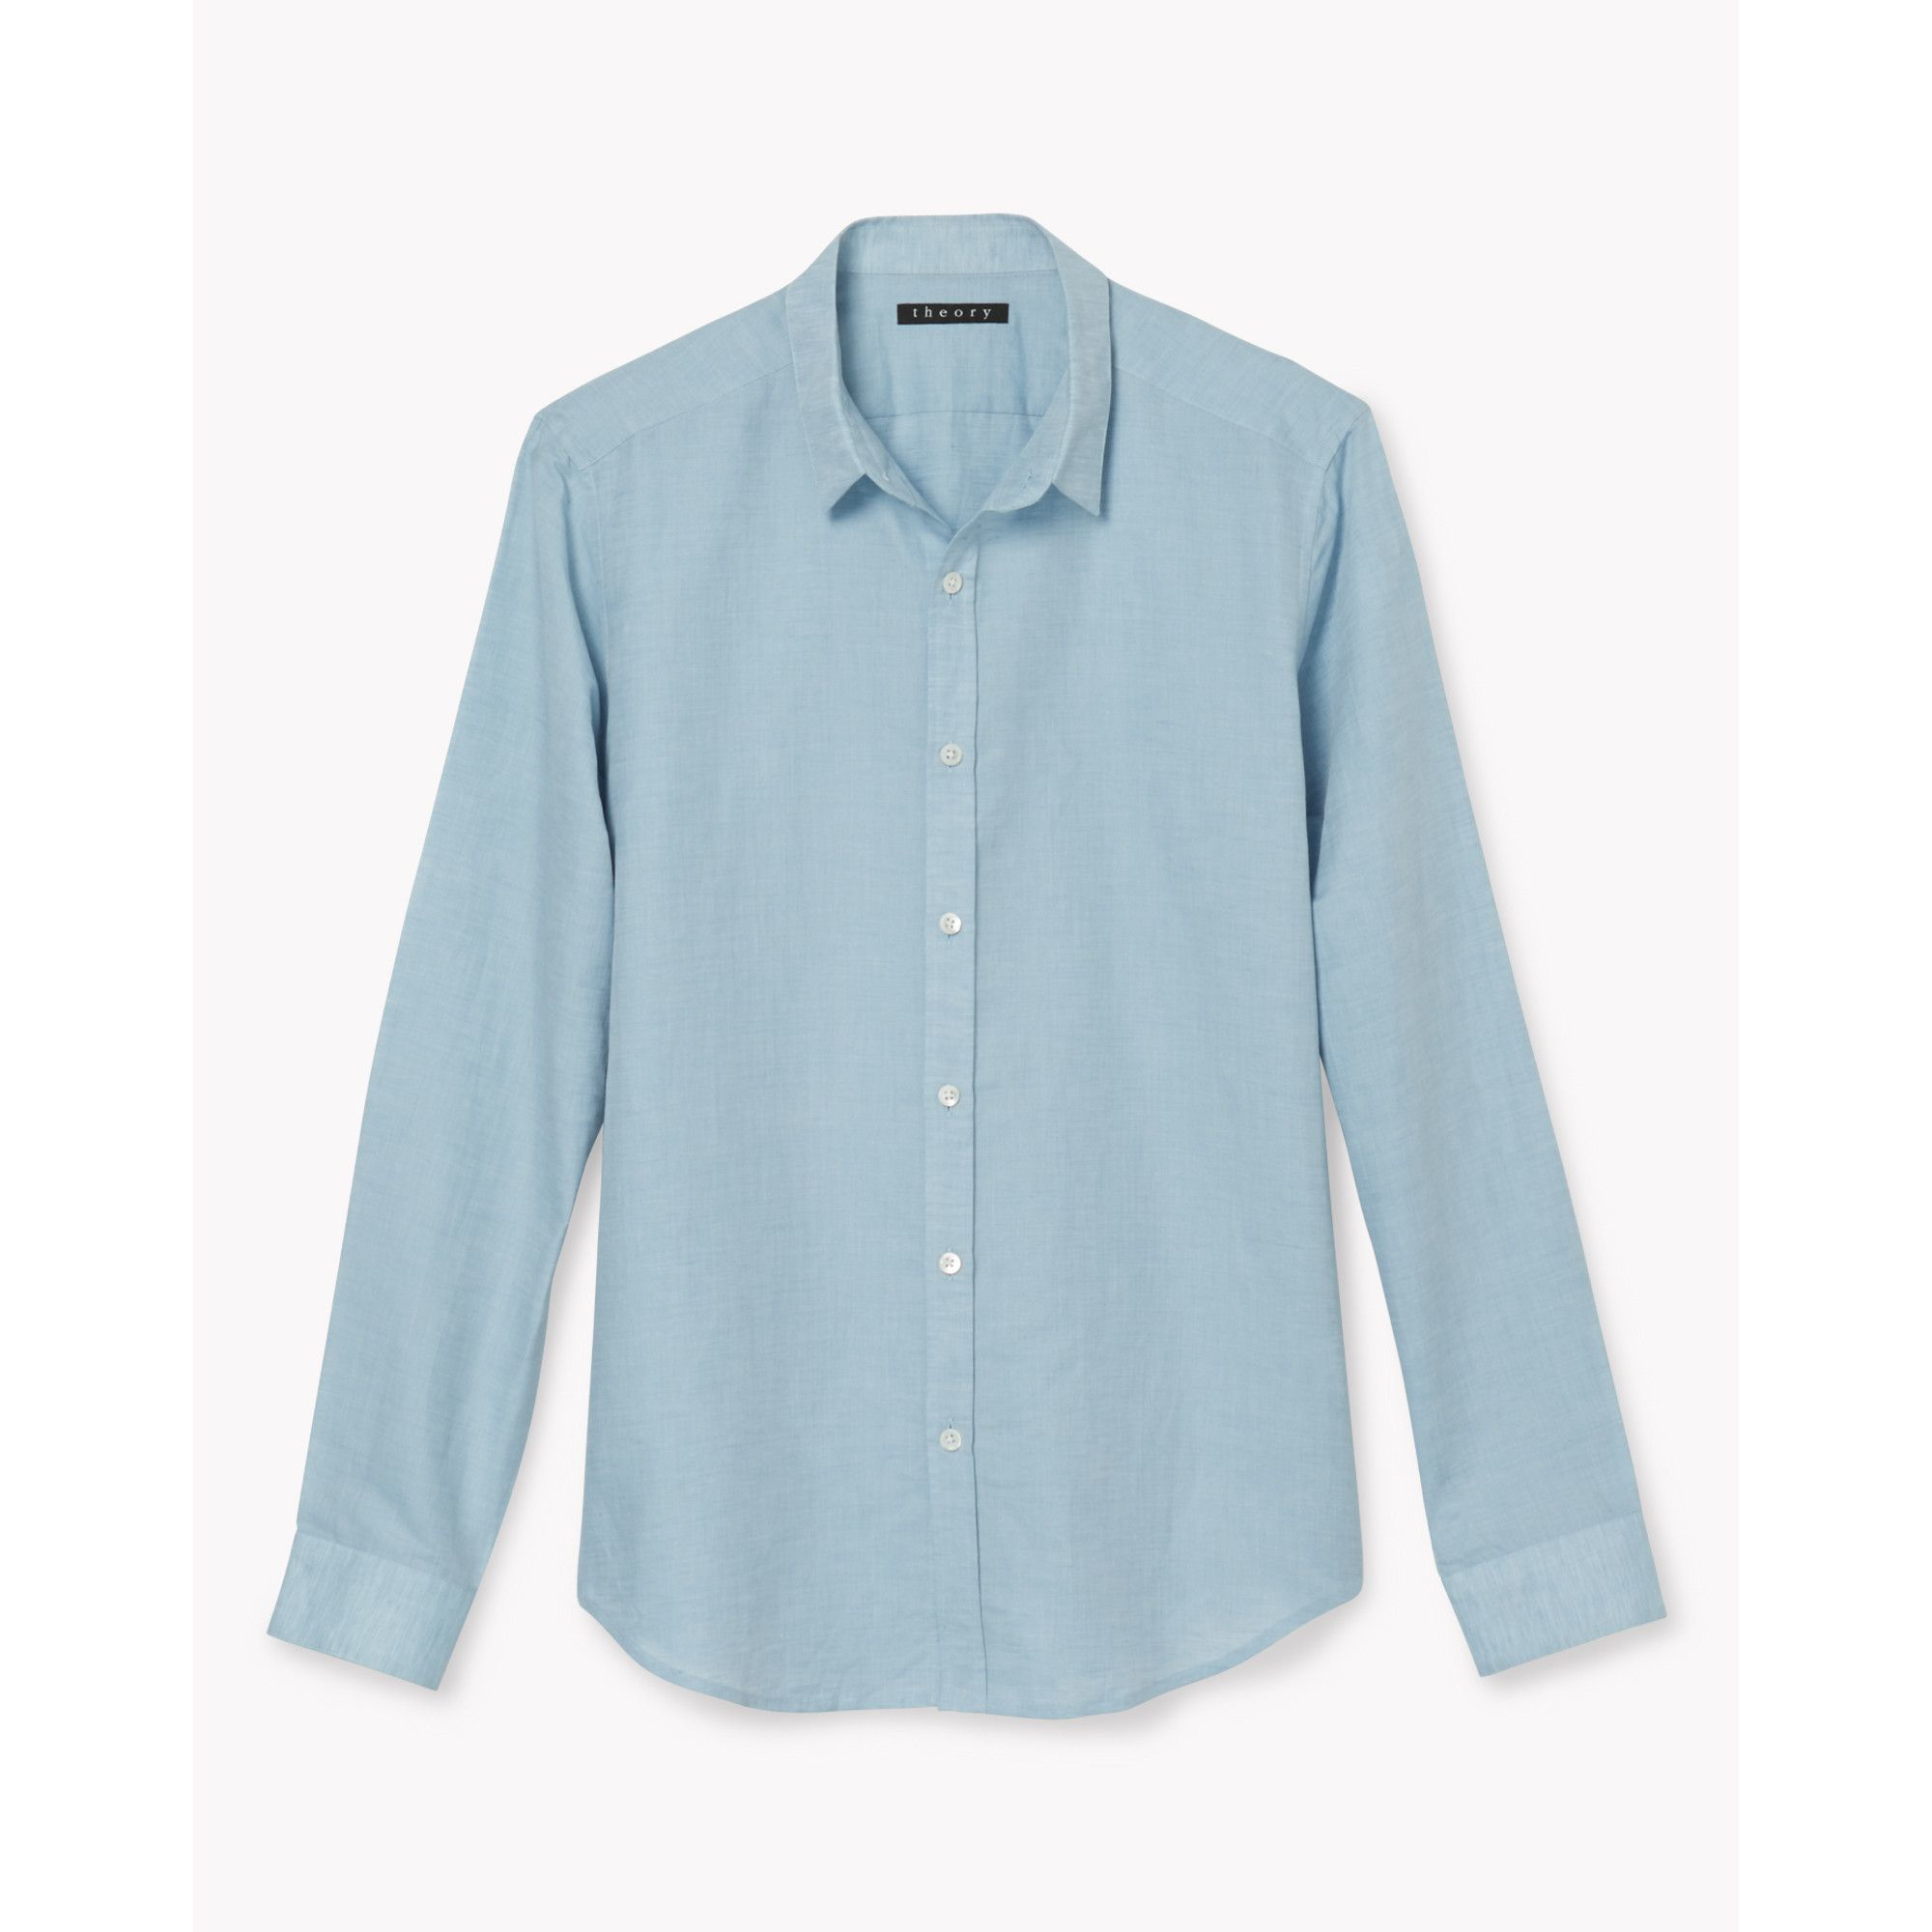 lyst theory linen cotton shirt in blue for men